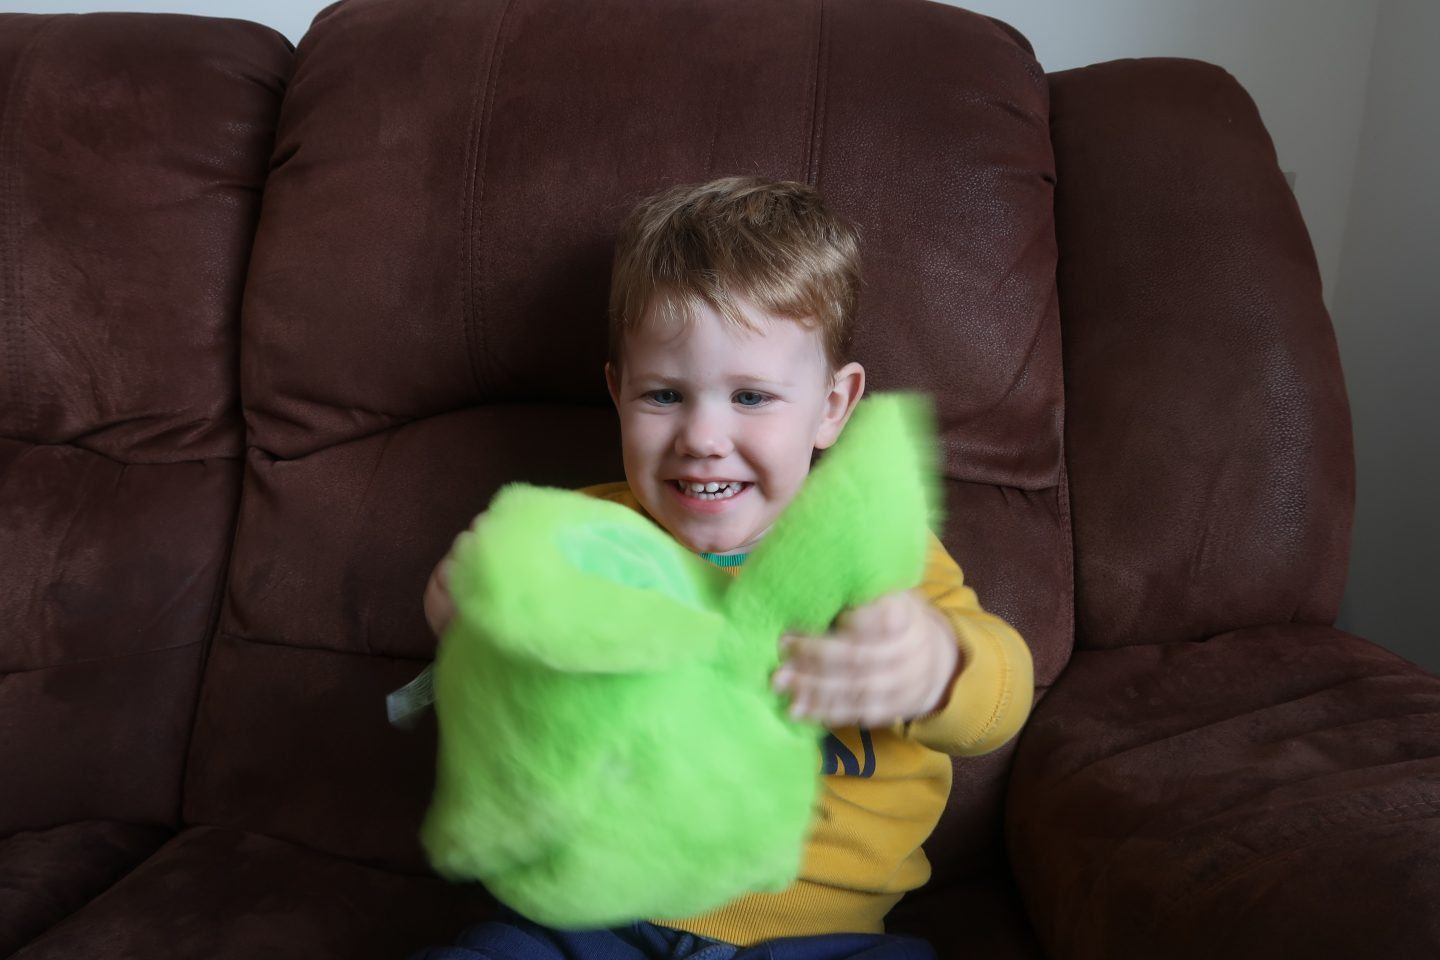 A young boy sat on a brown sofa and holding a green fluffy toy out in front of him. He is smiling at the toy